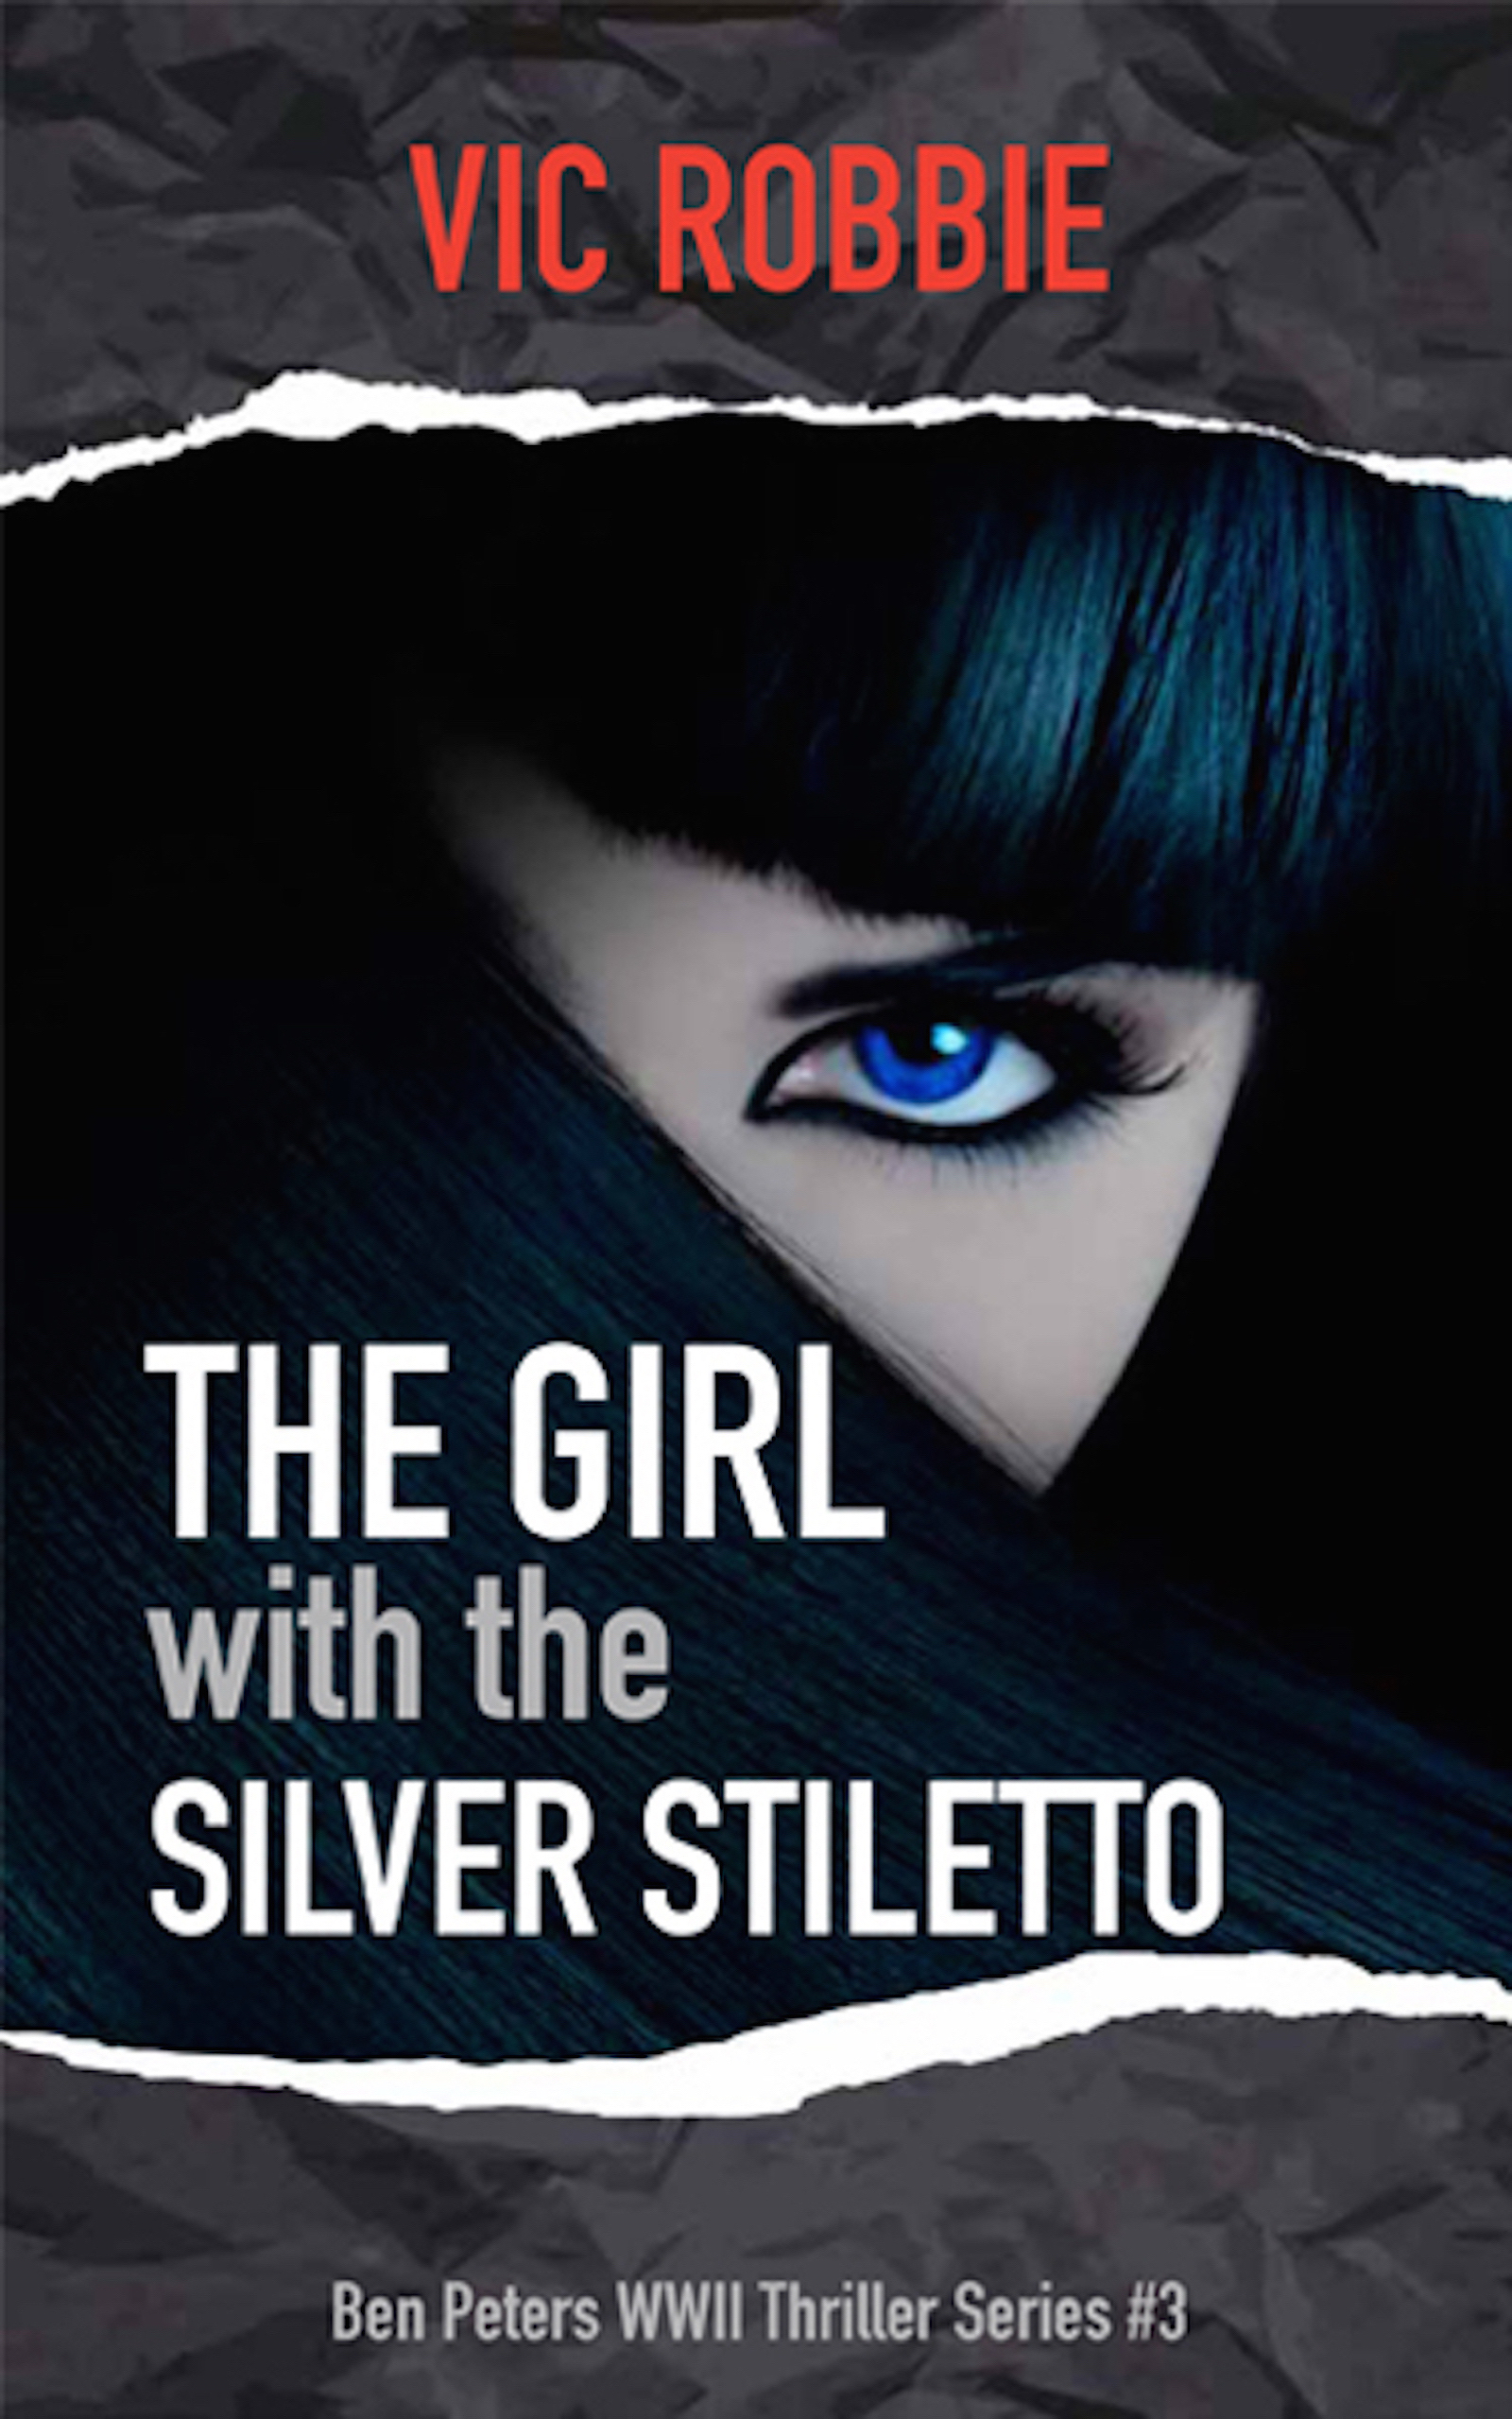 Book cover of Vic Robbie's latest The Girl with the Silver Stiletto